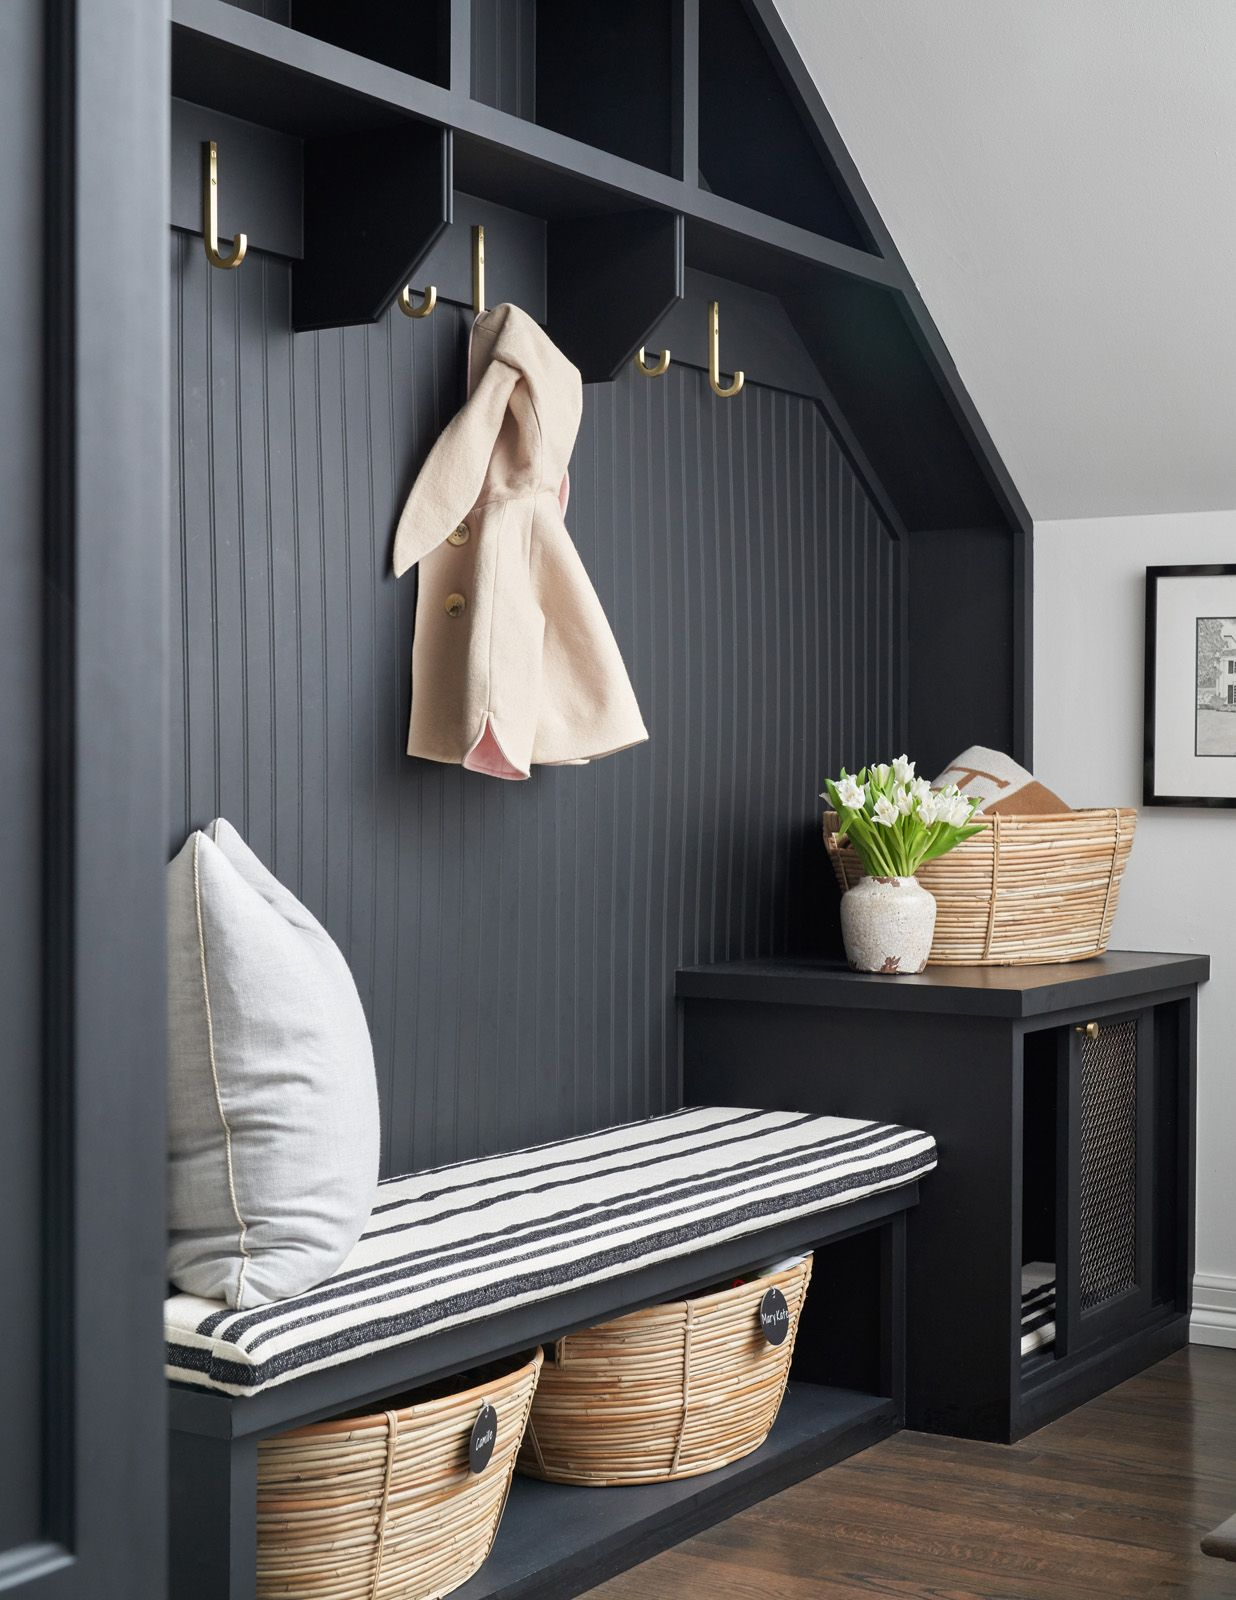 Black Shiplap Wall Black Mudroom Bench Under Bench Storage Basket Storage Light Pillow Black Cabinet Coat Hooks Decor Ship Lap Walls Home Decor